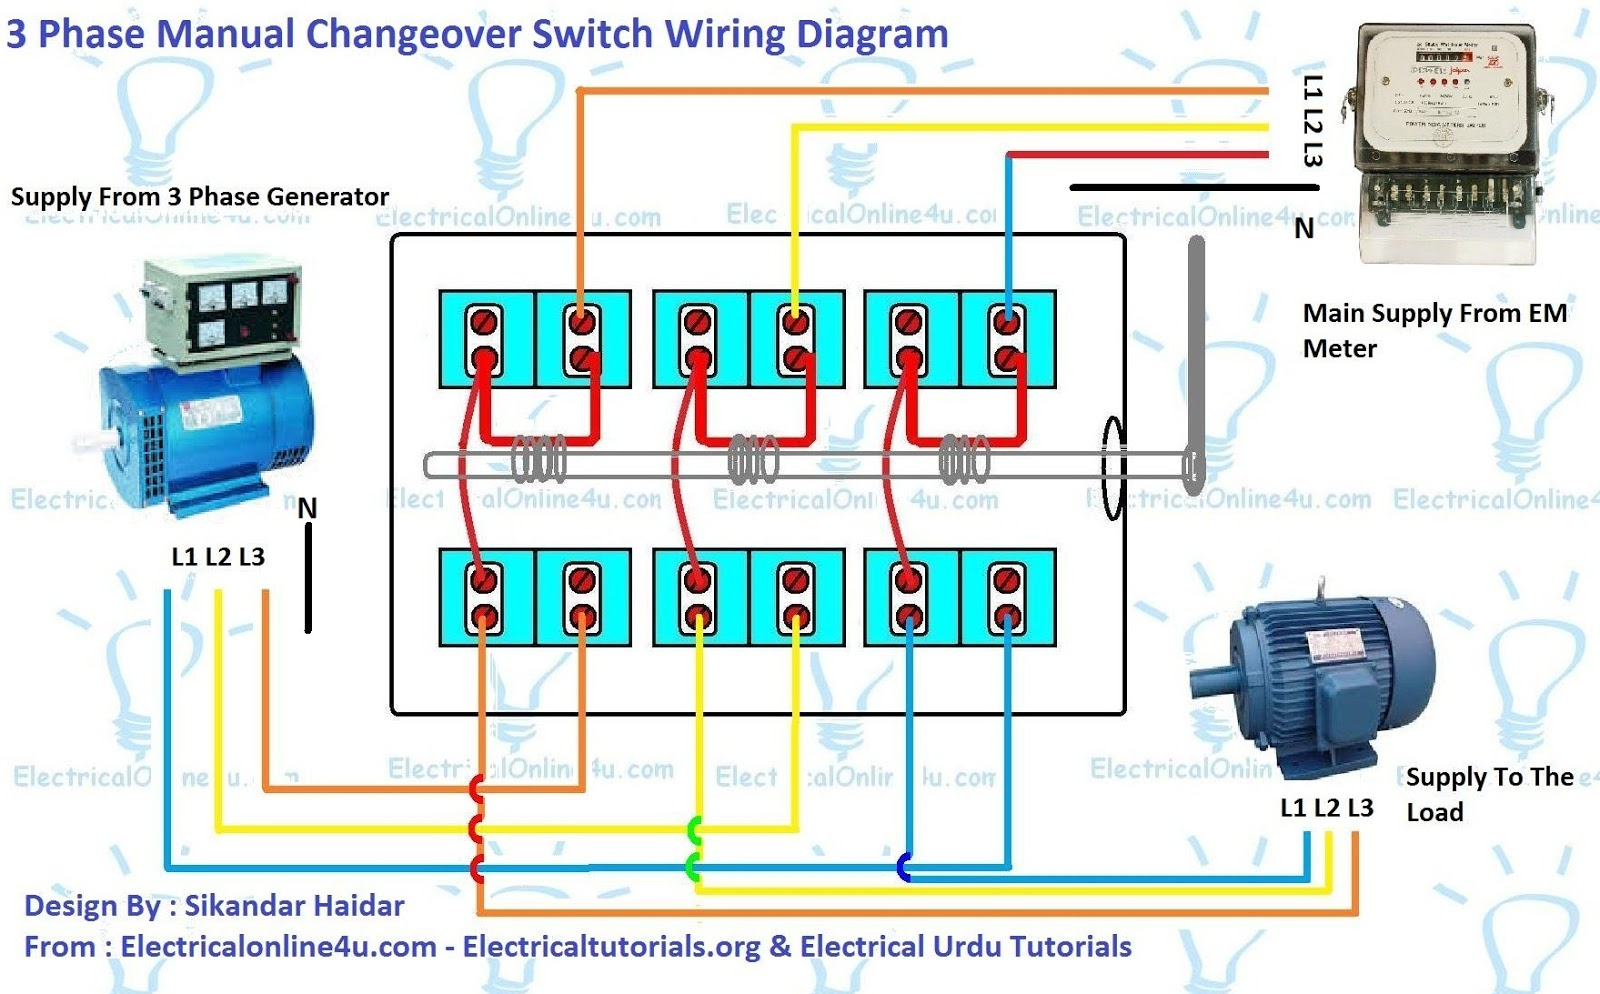 3%2Bphase%2Bmanual%2Bchangeover%2Bswitch%2Bwiring%2Bdiagram 3 phase manual changeover switch wiring diagram for generator 3 phase switch wiring diagram at virtualis.co